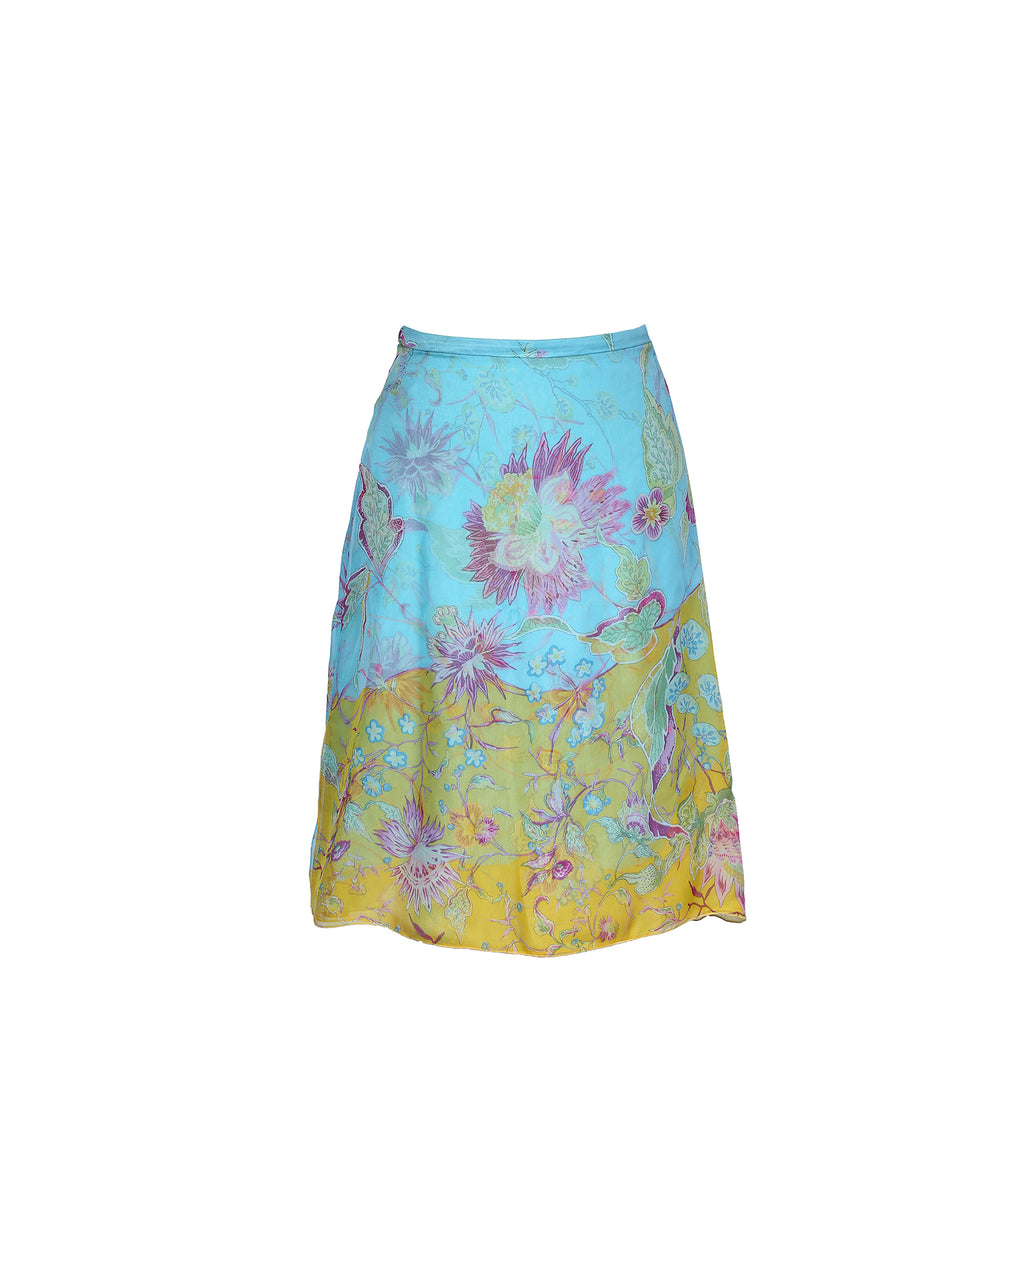 Valentino Silk Flower Print Short Skirt in Blue Size 38 (EU)